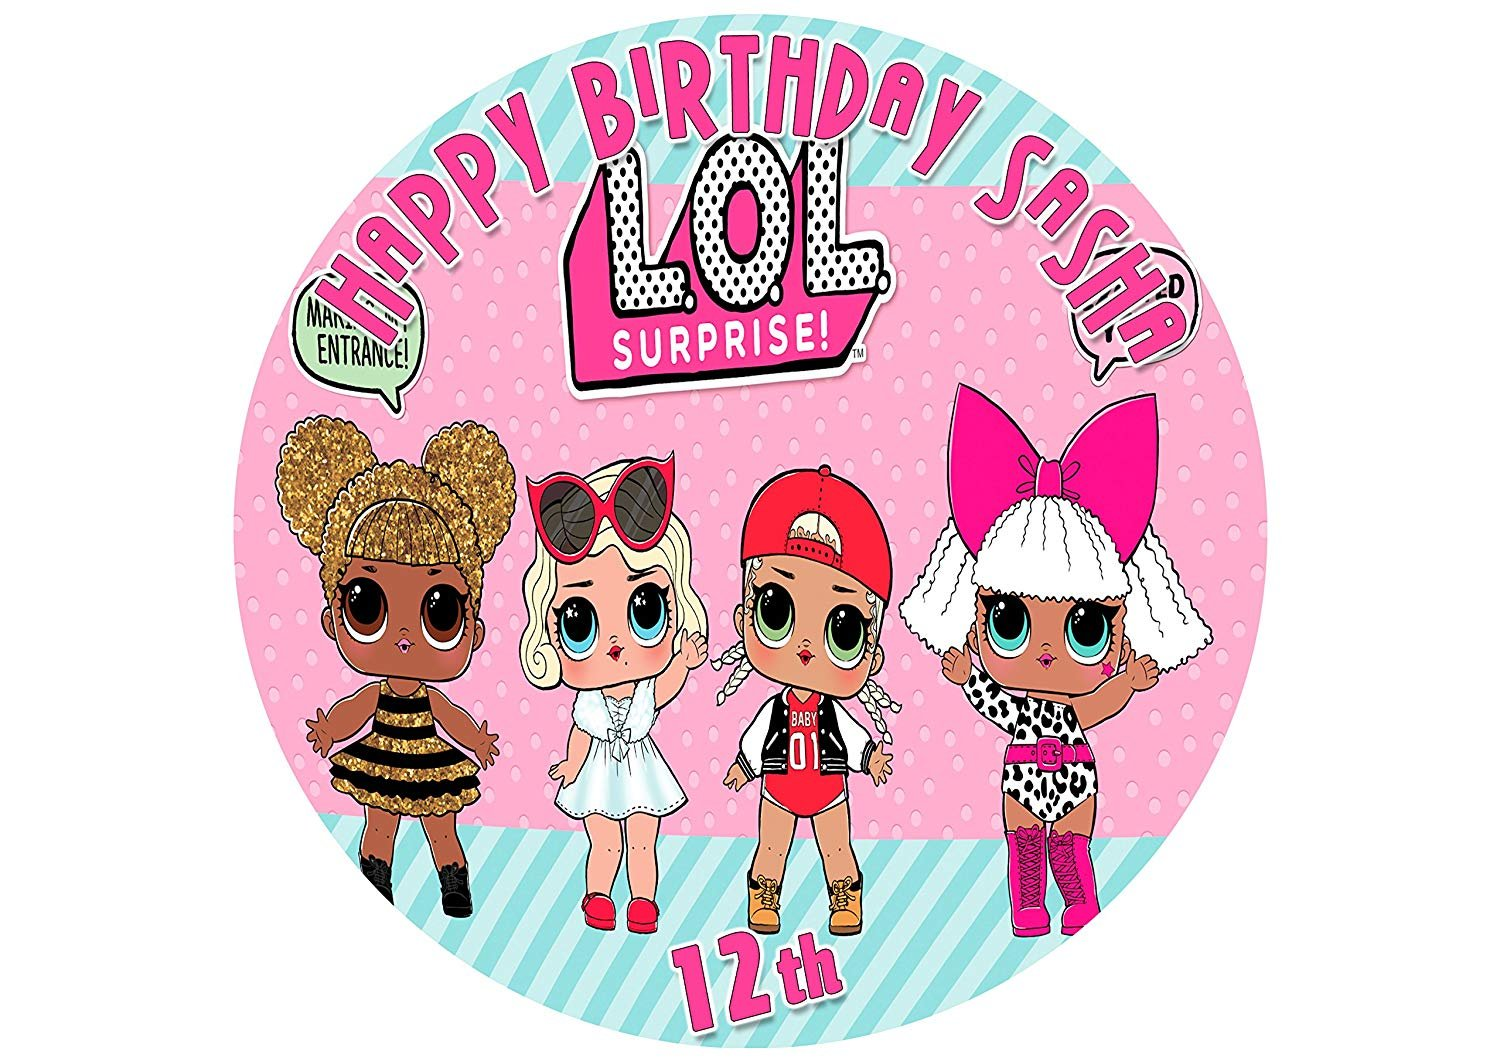 EdibleInkArt Cake Topper Personalized Birthday 6'' Round Circle Decoration Party Birthday Sugar Frosting Transfer Fondant Image ~ Best Quality Edible Image for Cake Surprice